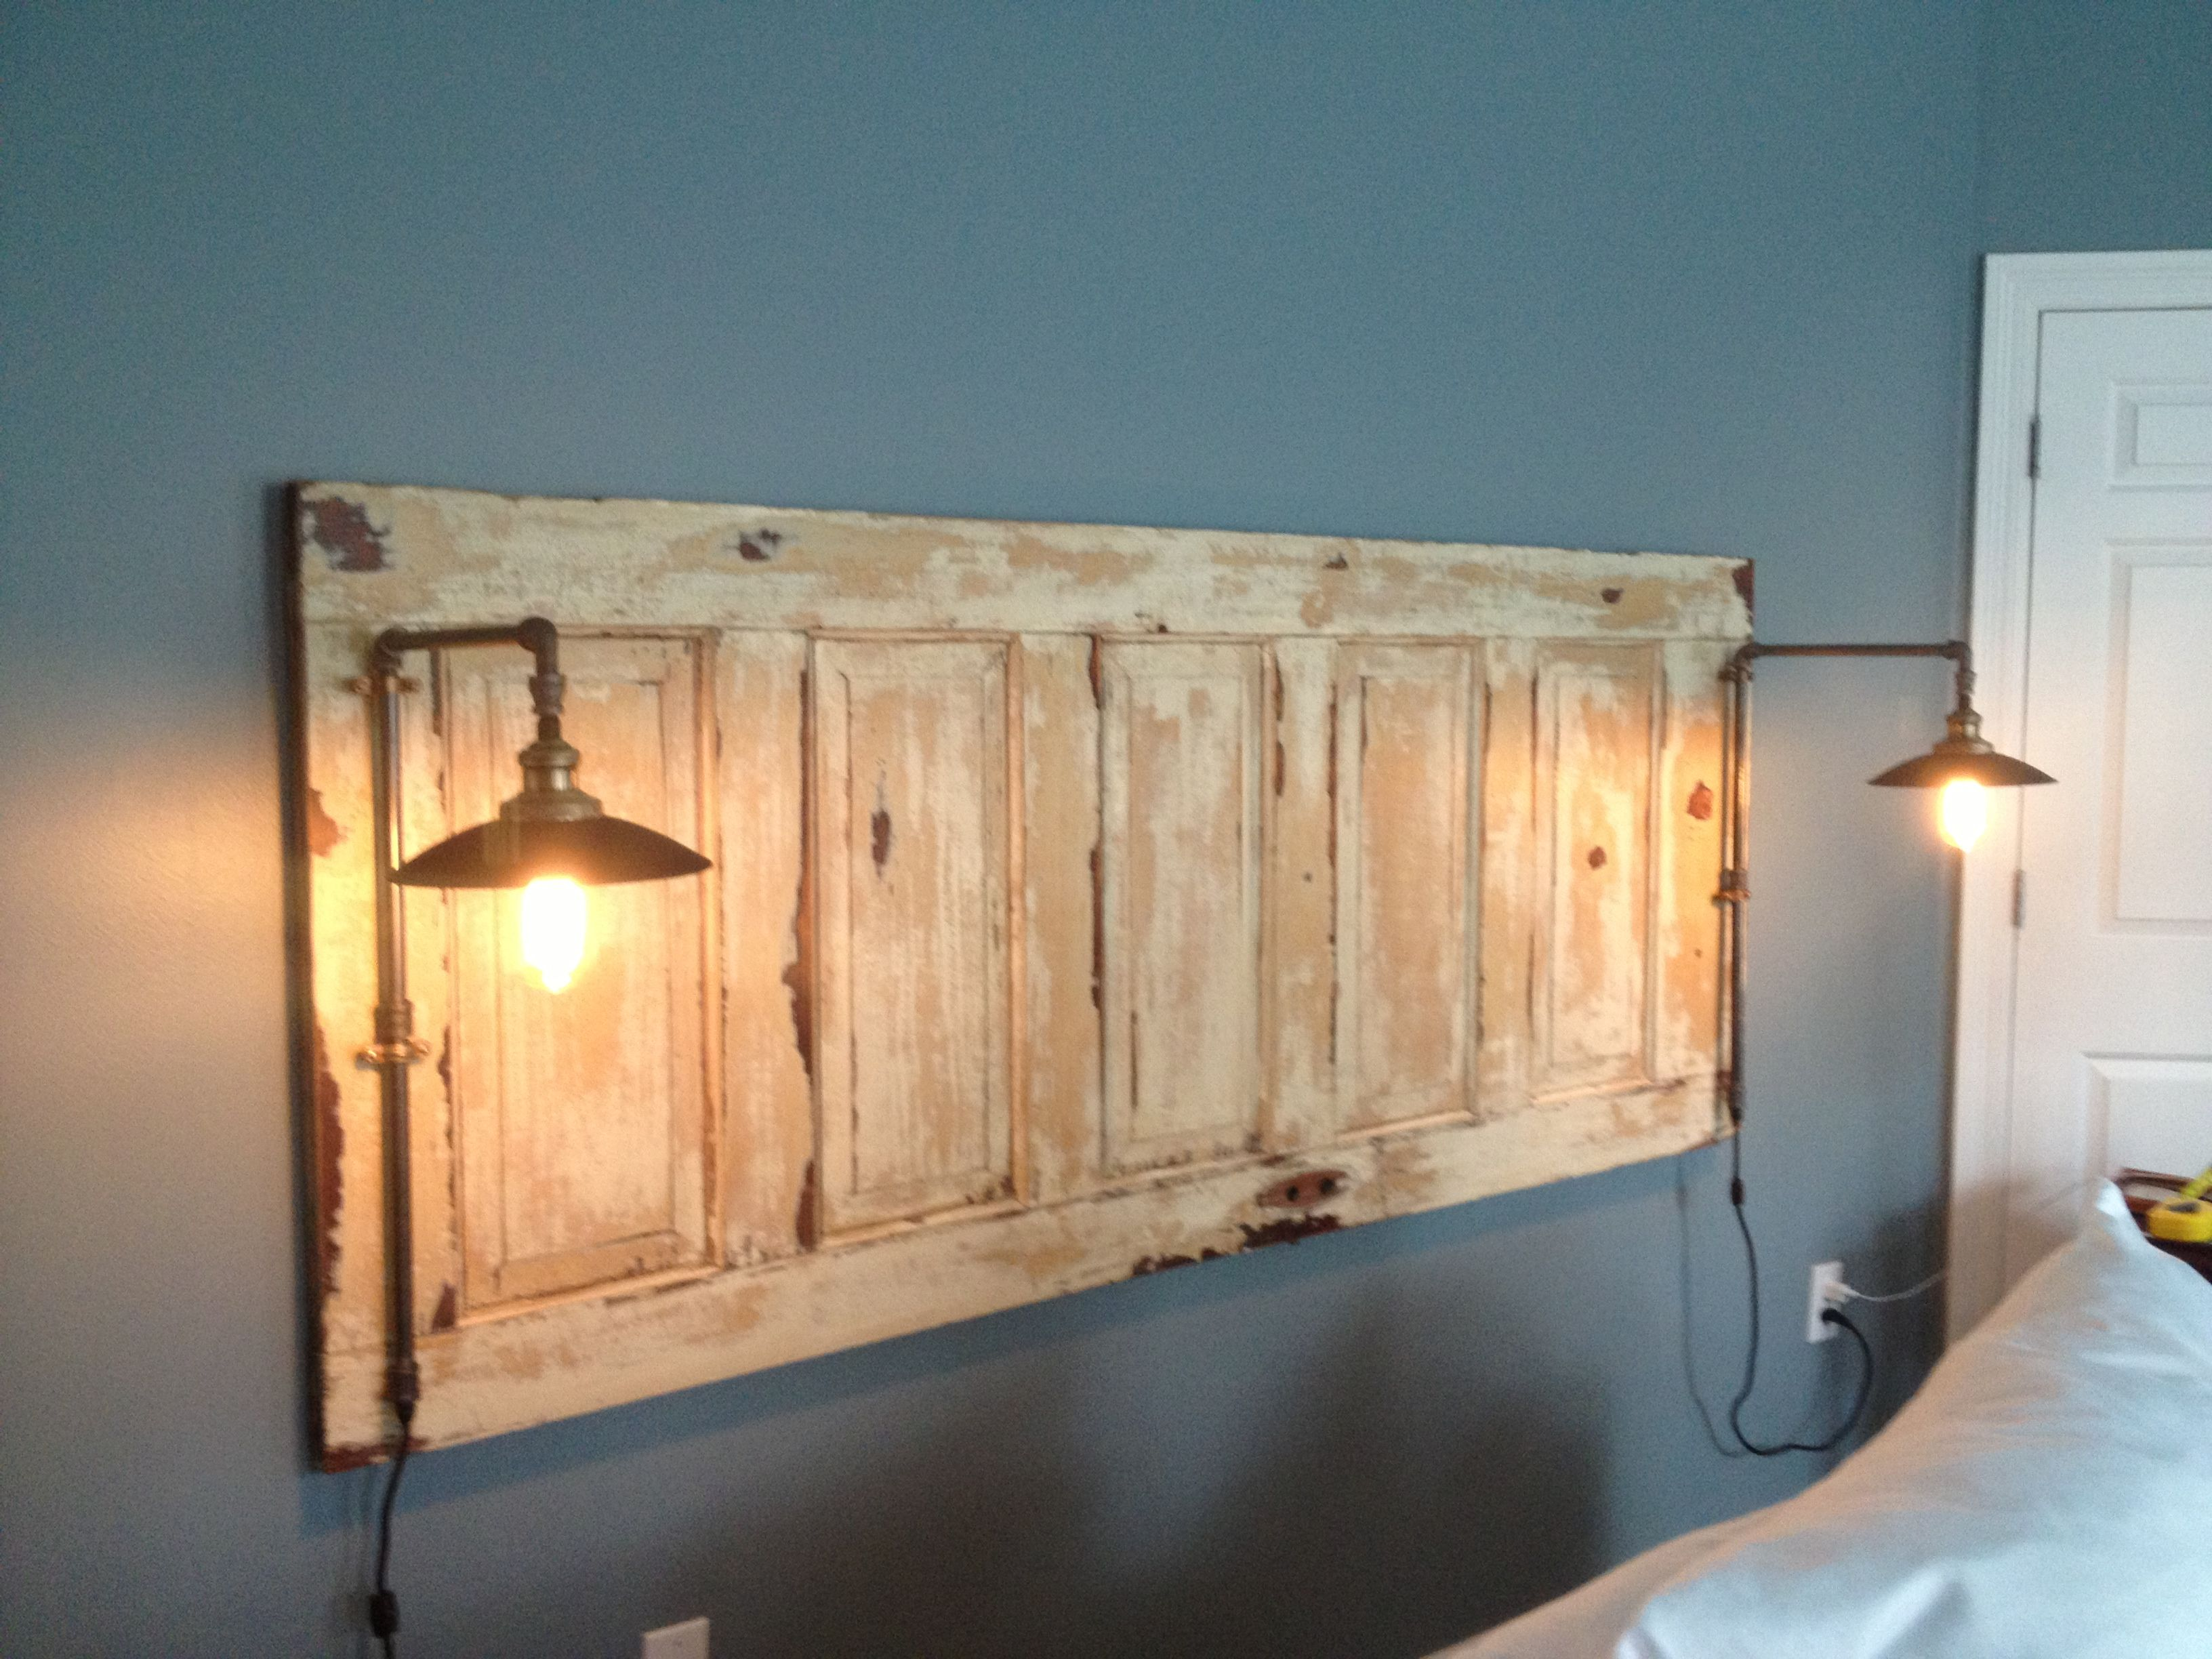 king size natural headboard with lights  headboard  pinterest  - king size natural headboard with lights